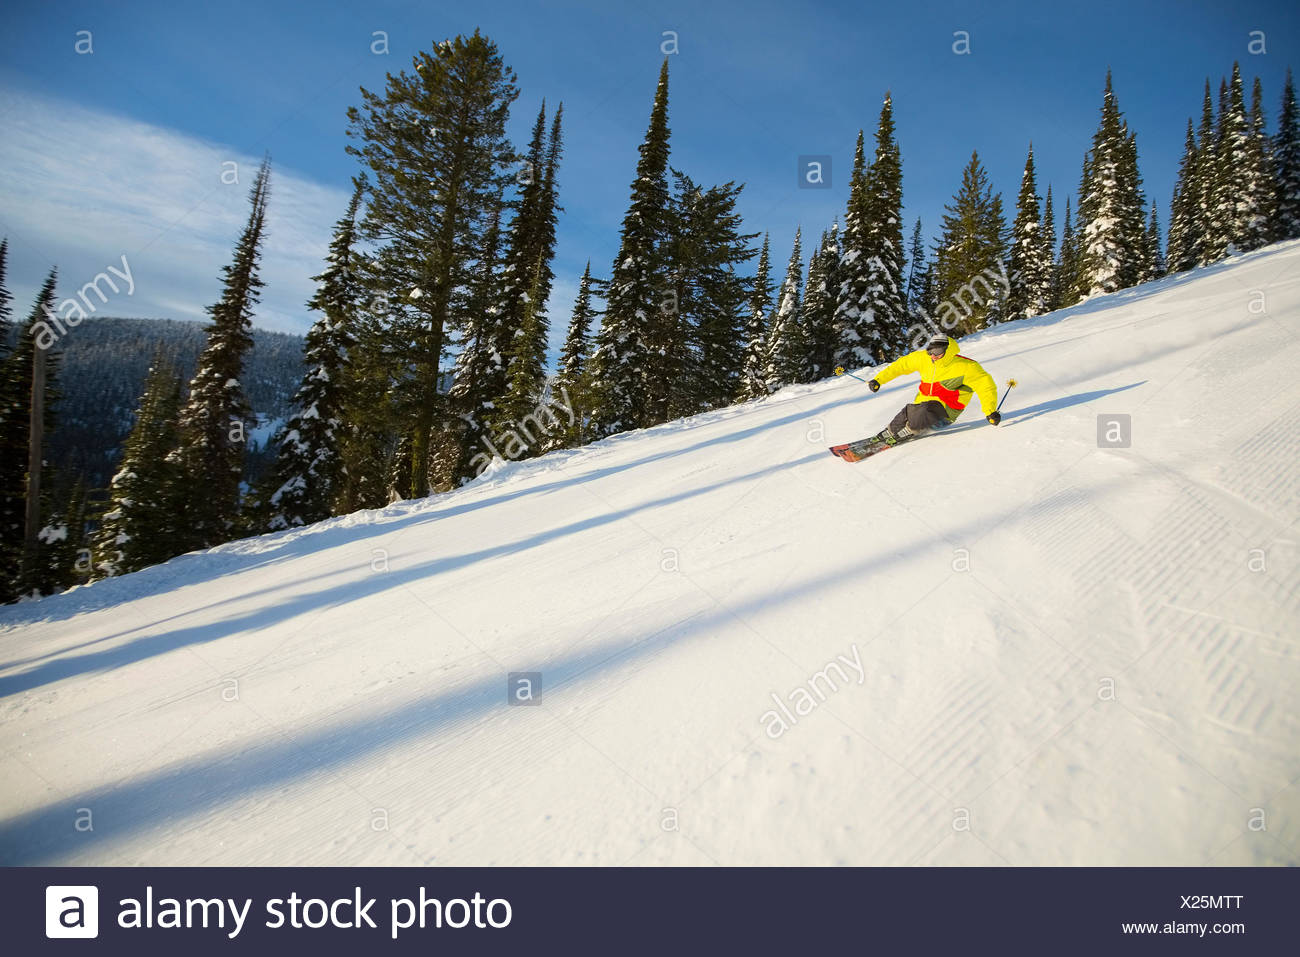 Low angle view of young man on ski slope - Stock Image